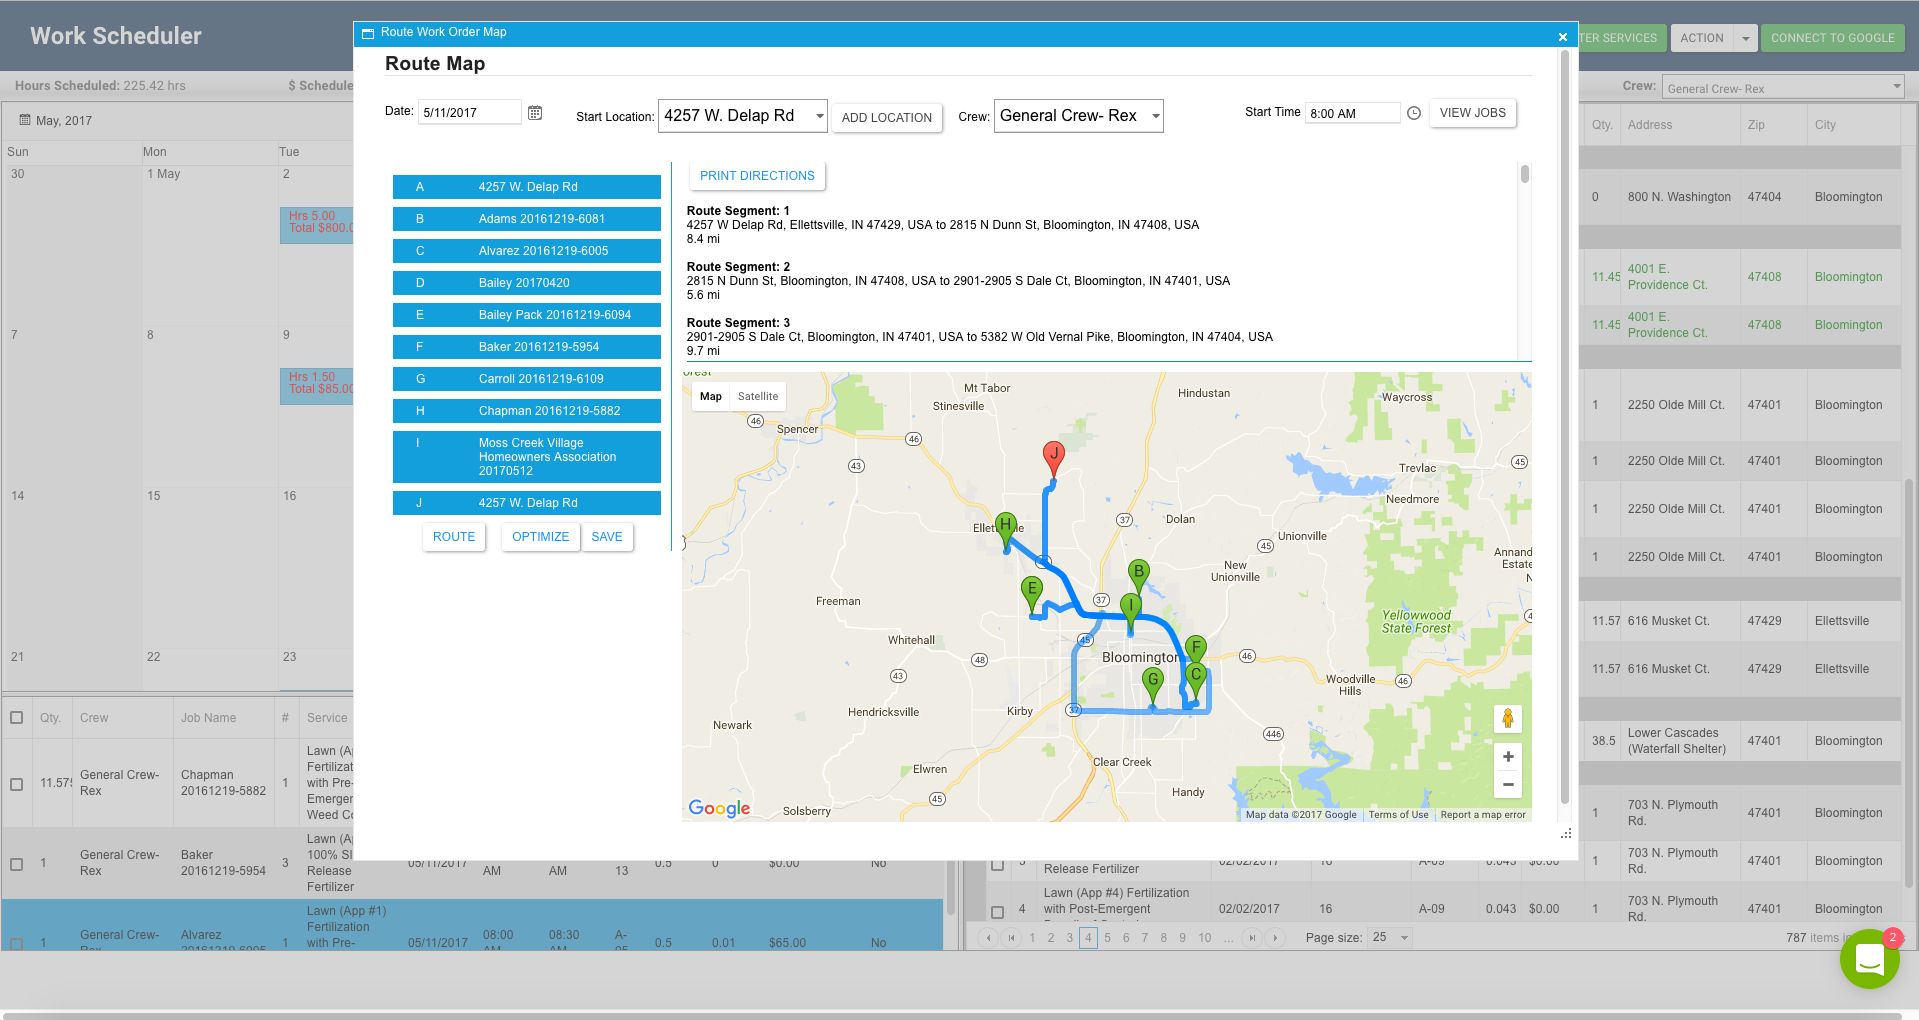 Just one click to organize all jobs in the best possible route/order, showing crews the fastest way to each job site